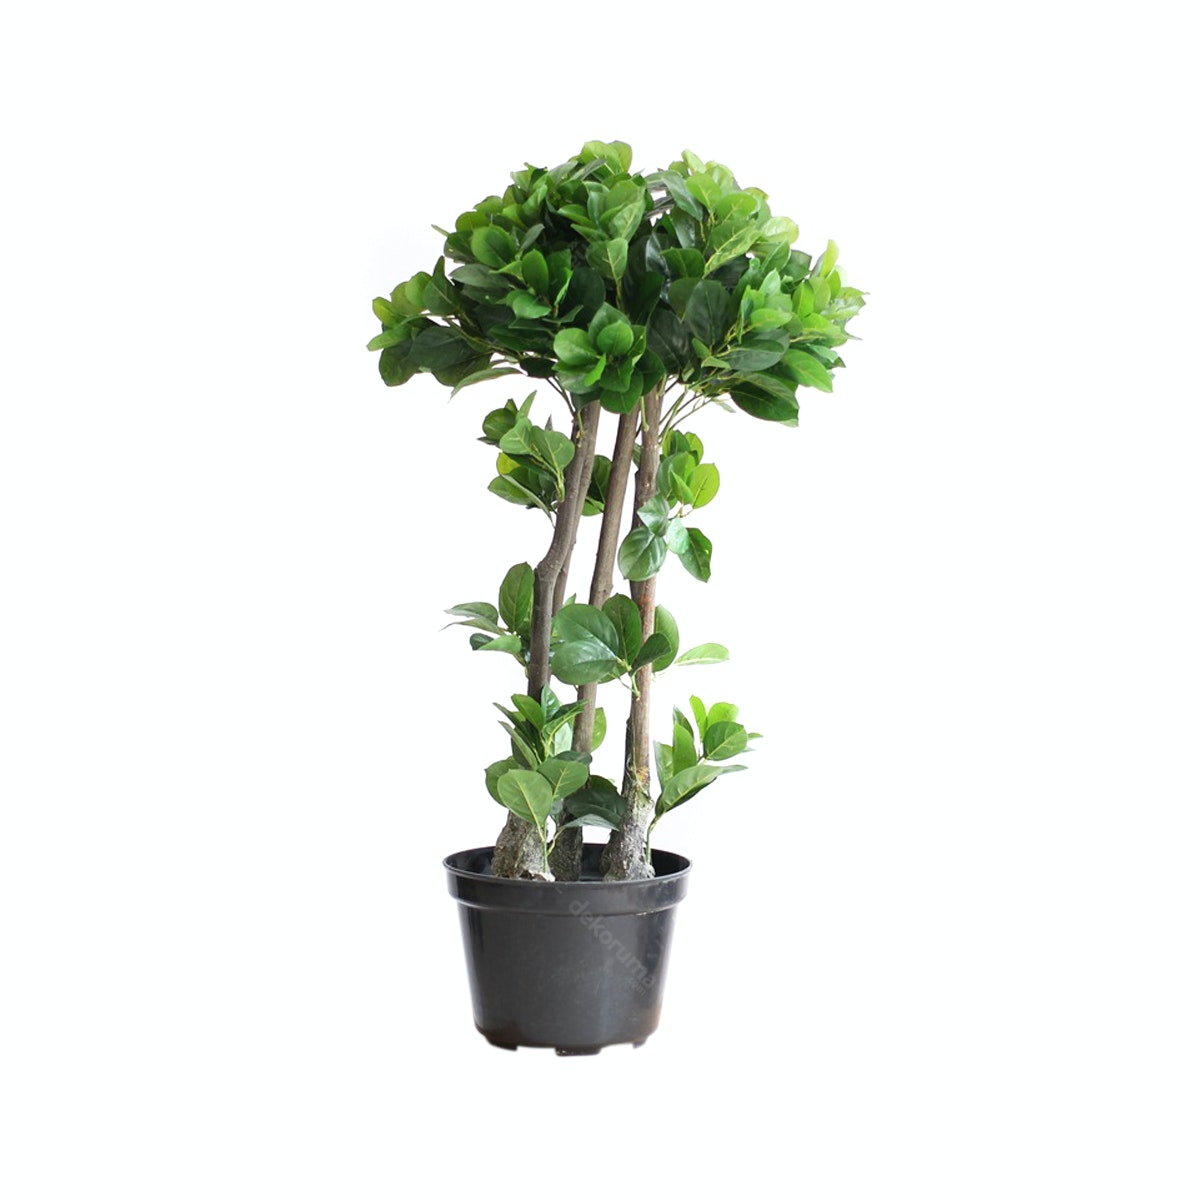 KANA FURNITURE Artificial Plant 2409 Jack Fruit A3